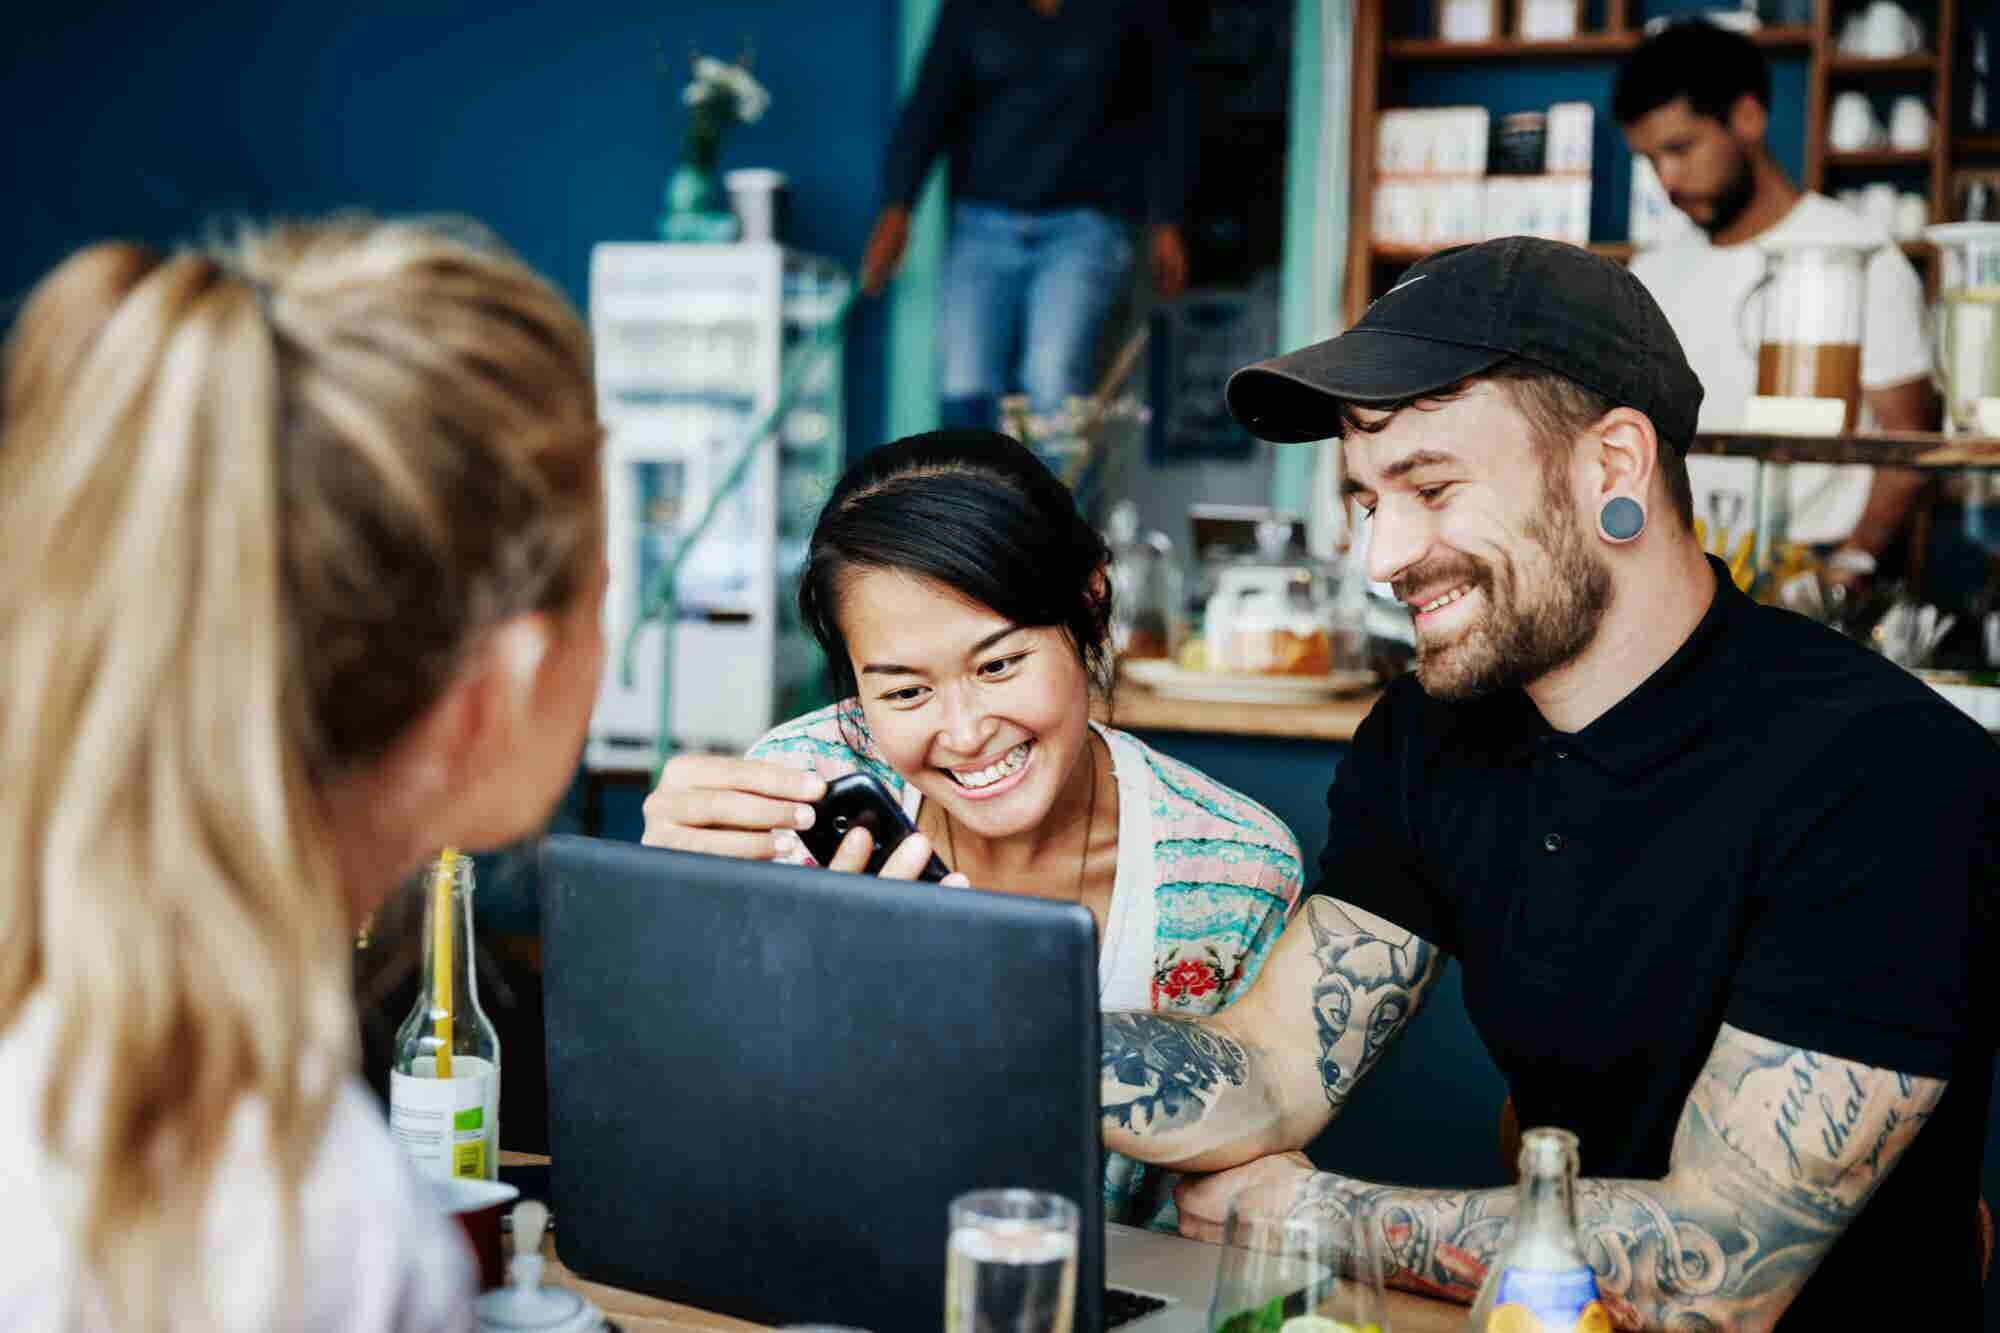 4 Simple Ways to Up Your Millennial Marketing Game